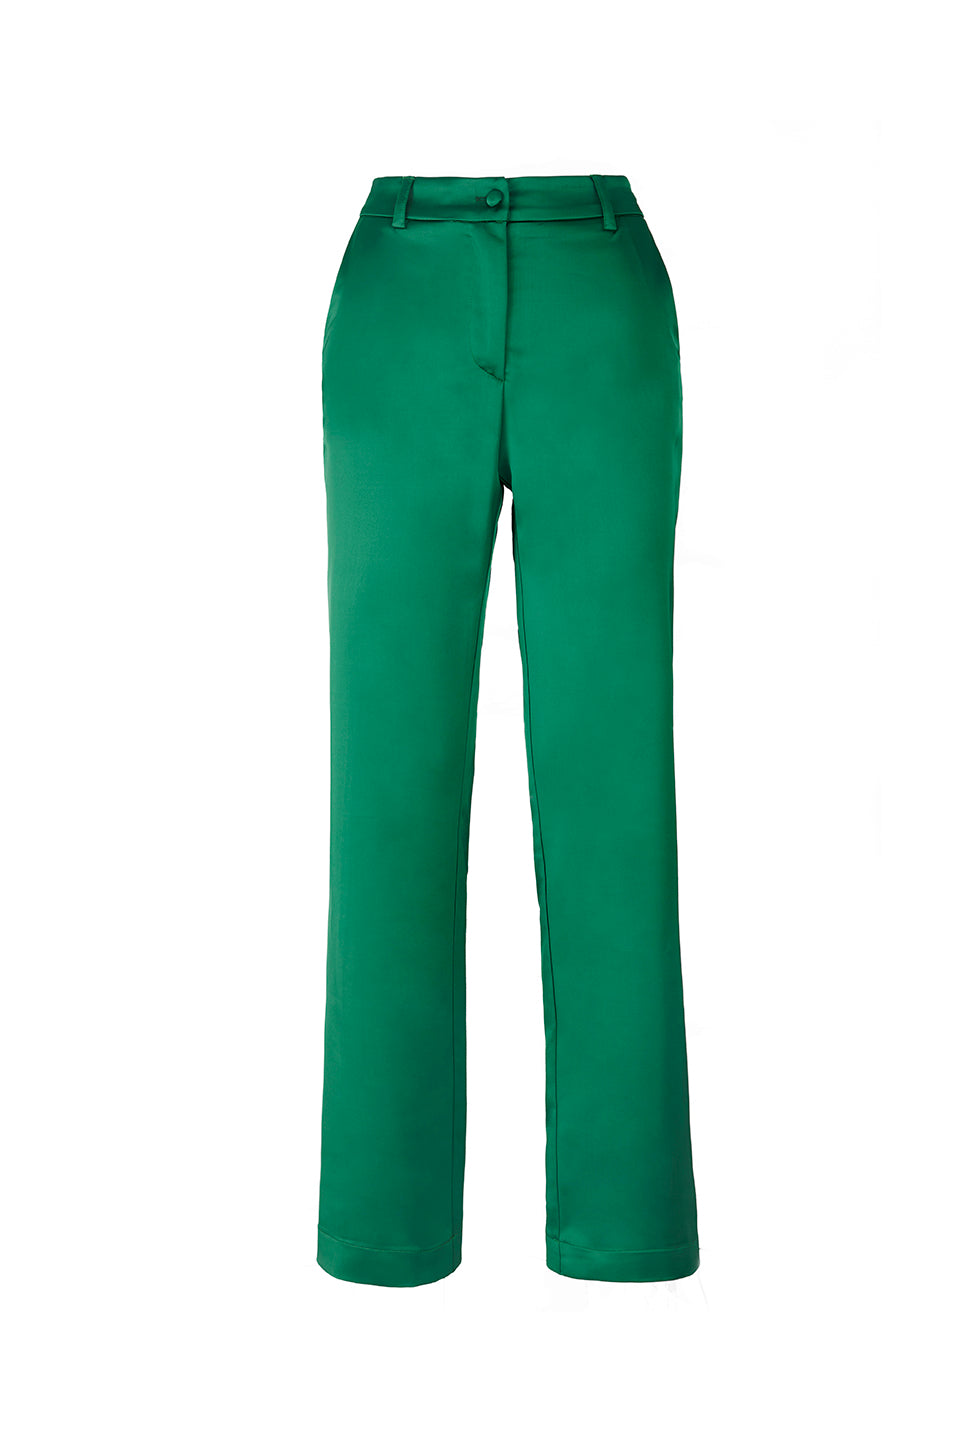 The Green Satin Lover Pants